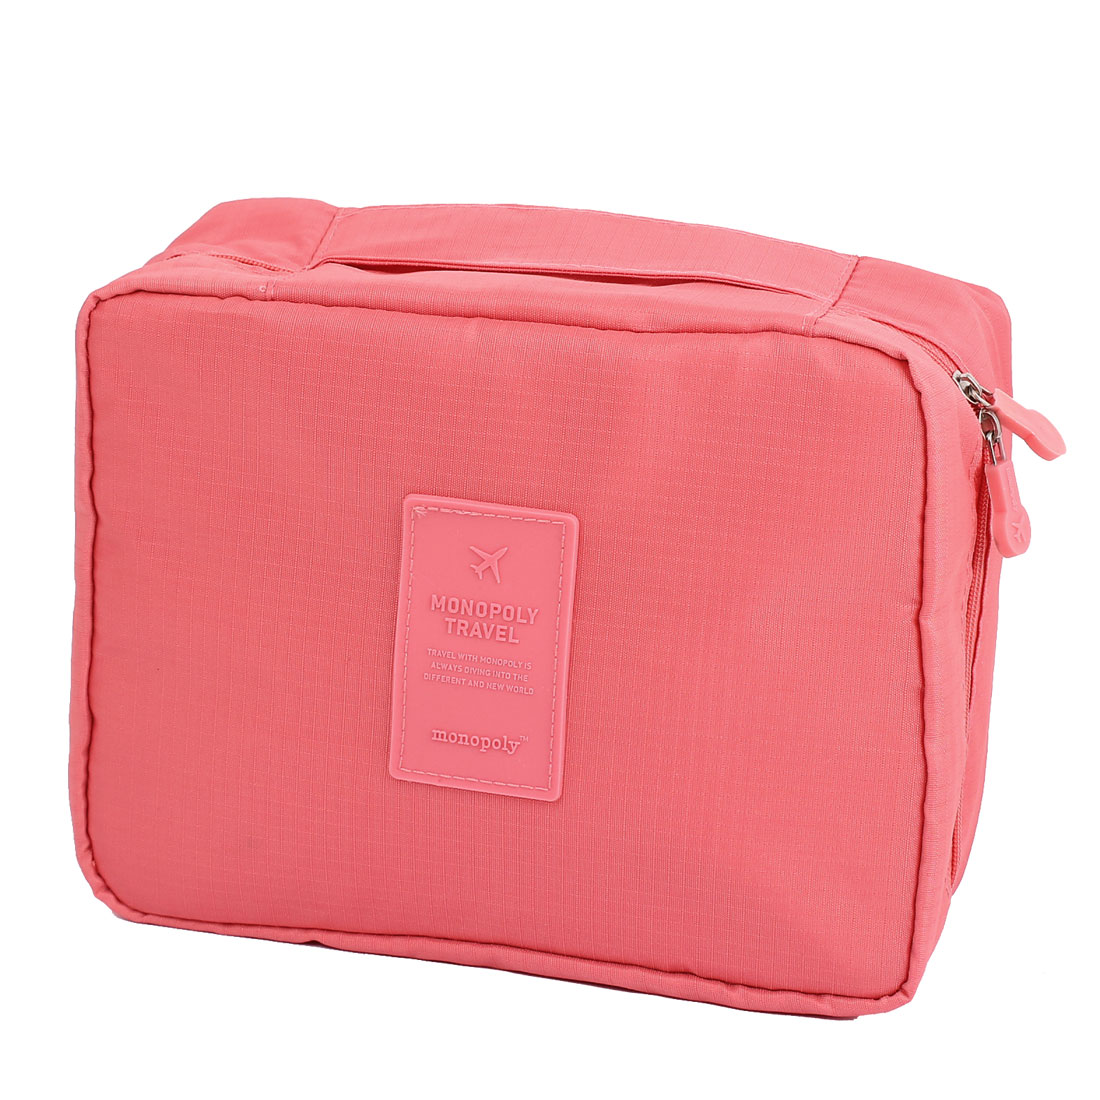 Travel Camping Toiletry Toiletries Cosmetic Shaving Wash Bag Storage Case Pink